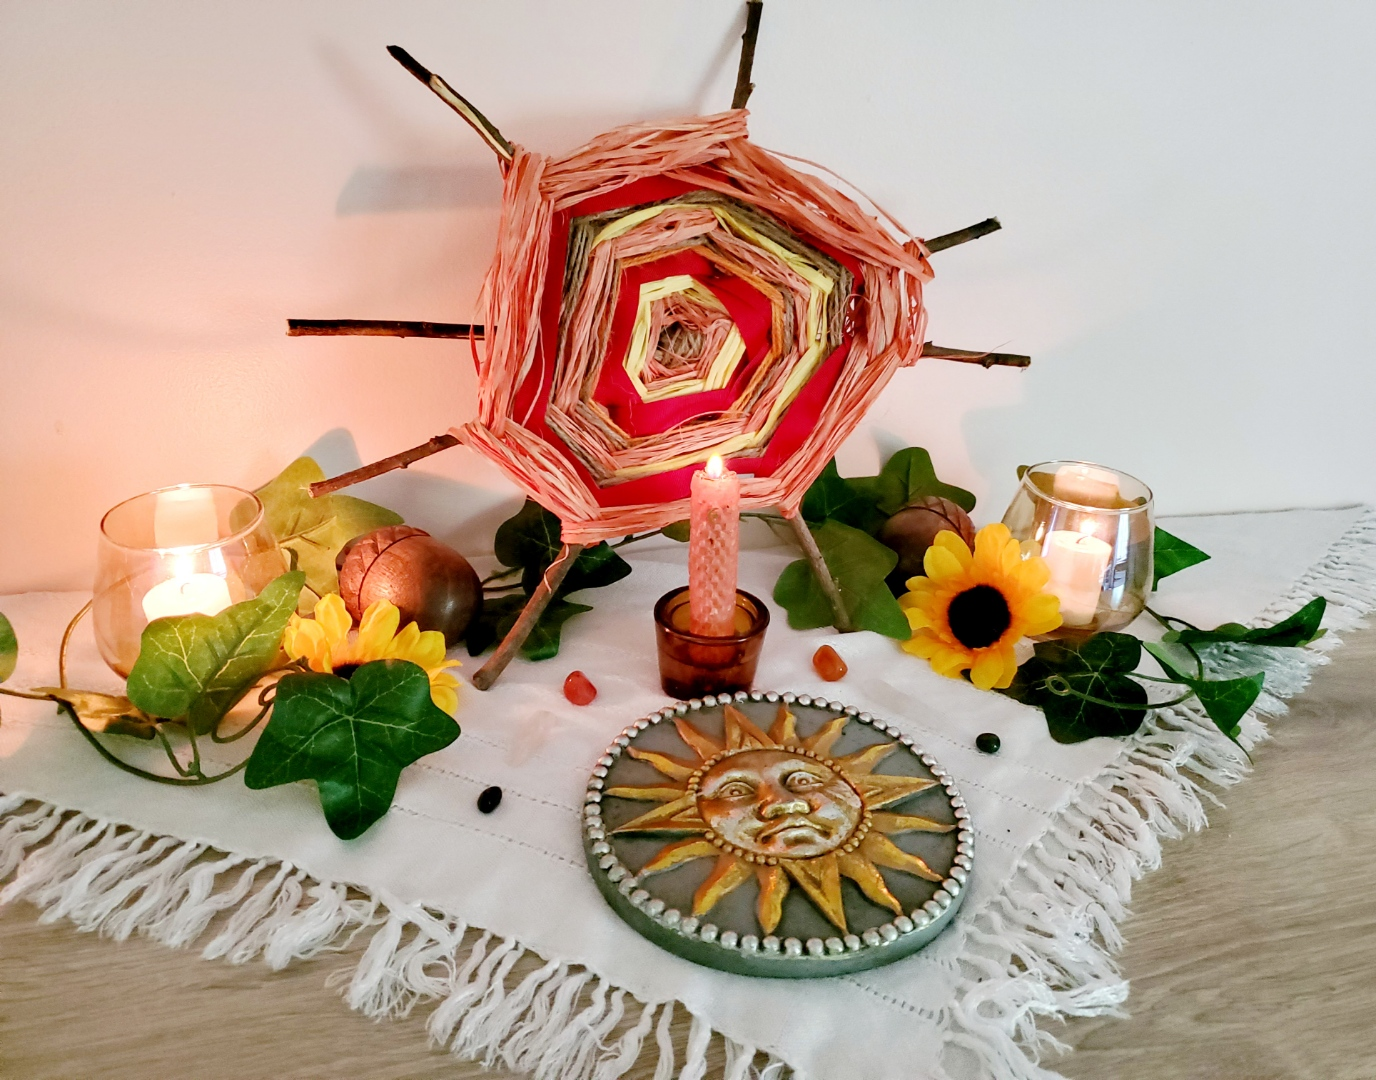 Litha, altar, witch, witchcraft, Midsummer, Midsummer Solstice, Summer Solstice, witchy